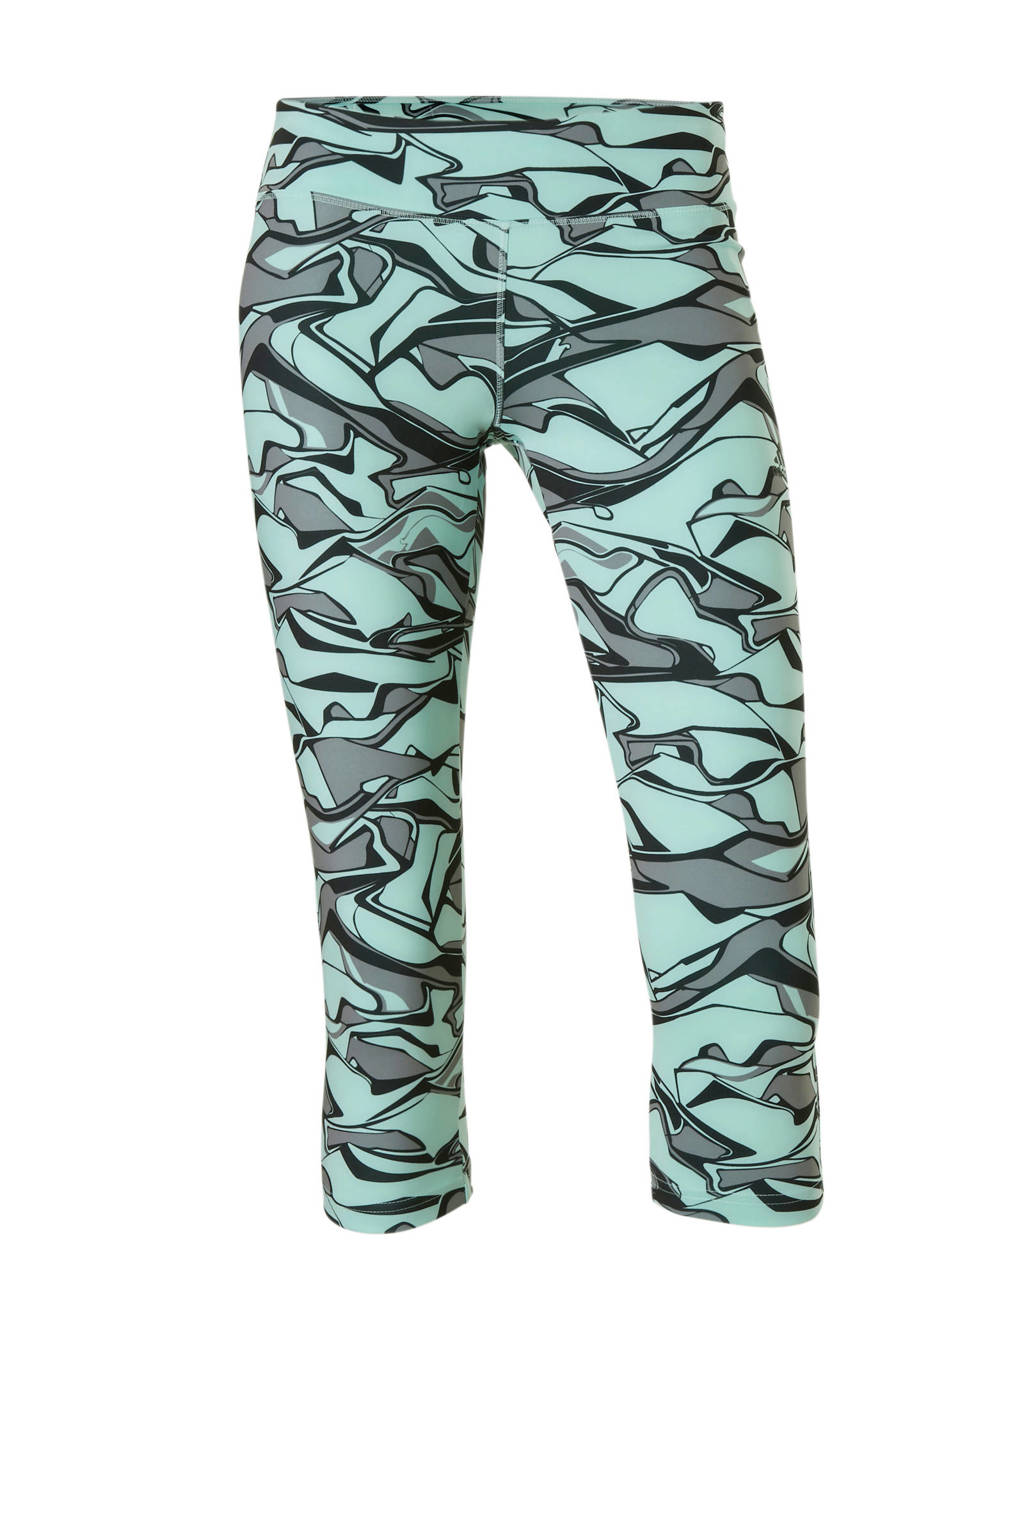 adidas performance capri sportbroek met all-over print mintgroen, Mintgroen